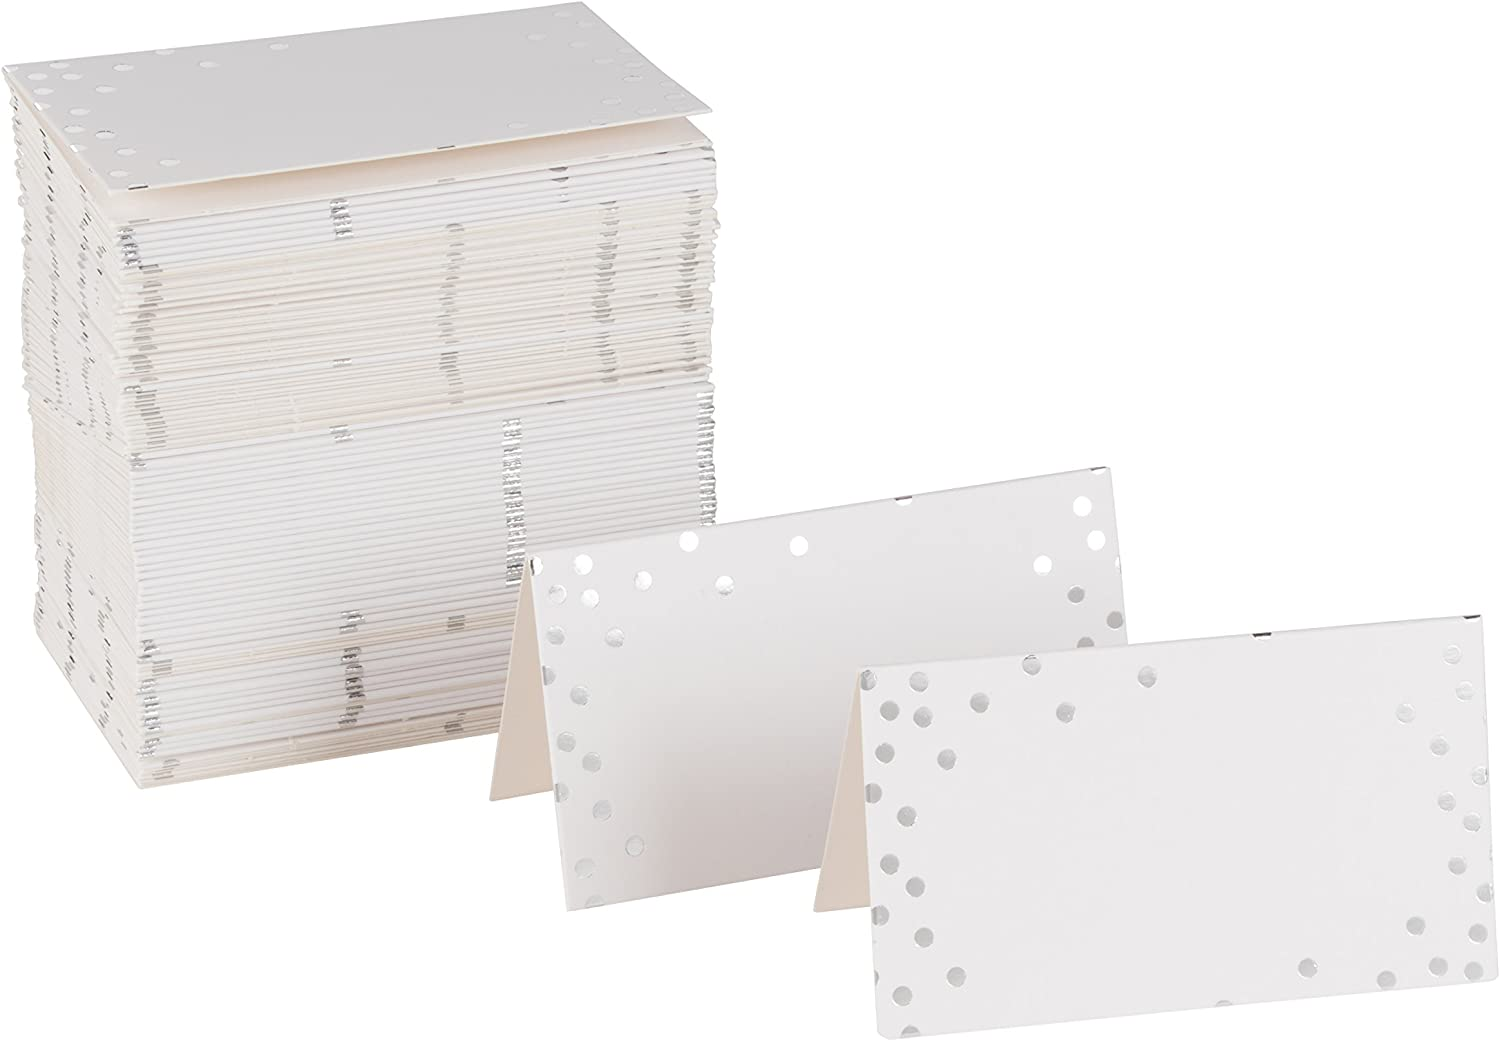 Place Cards - 100-Pack Small Tent Cards with Silver Foil Polka Dots, Foldover Table Placecards, Perfect for Weddings, Banquets, Events, Folded 2 x 3.5 Inches